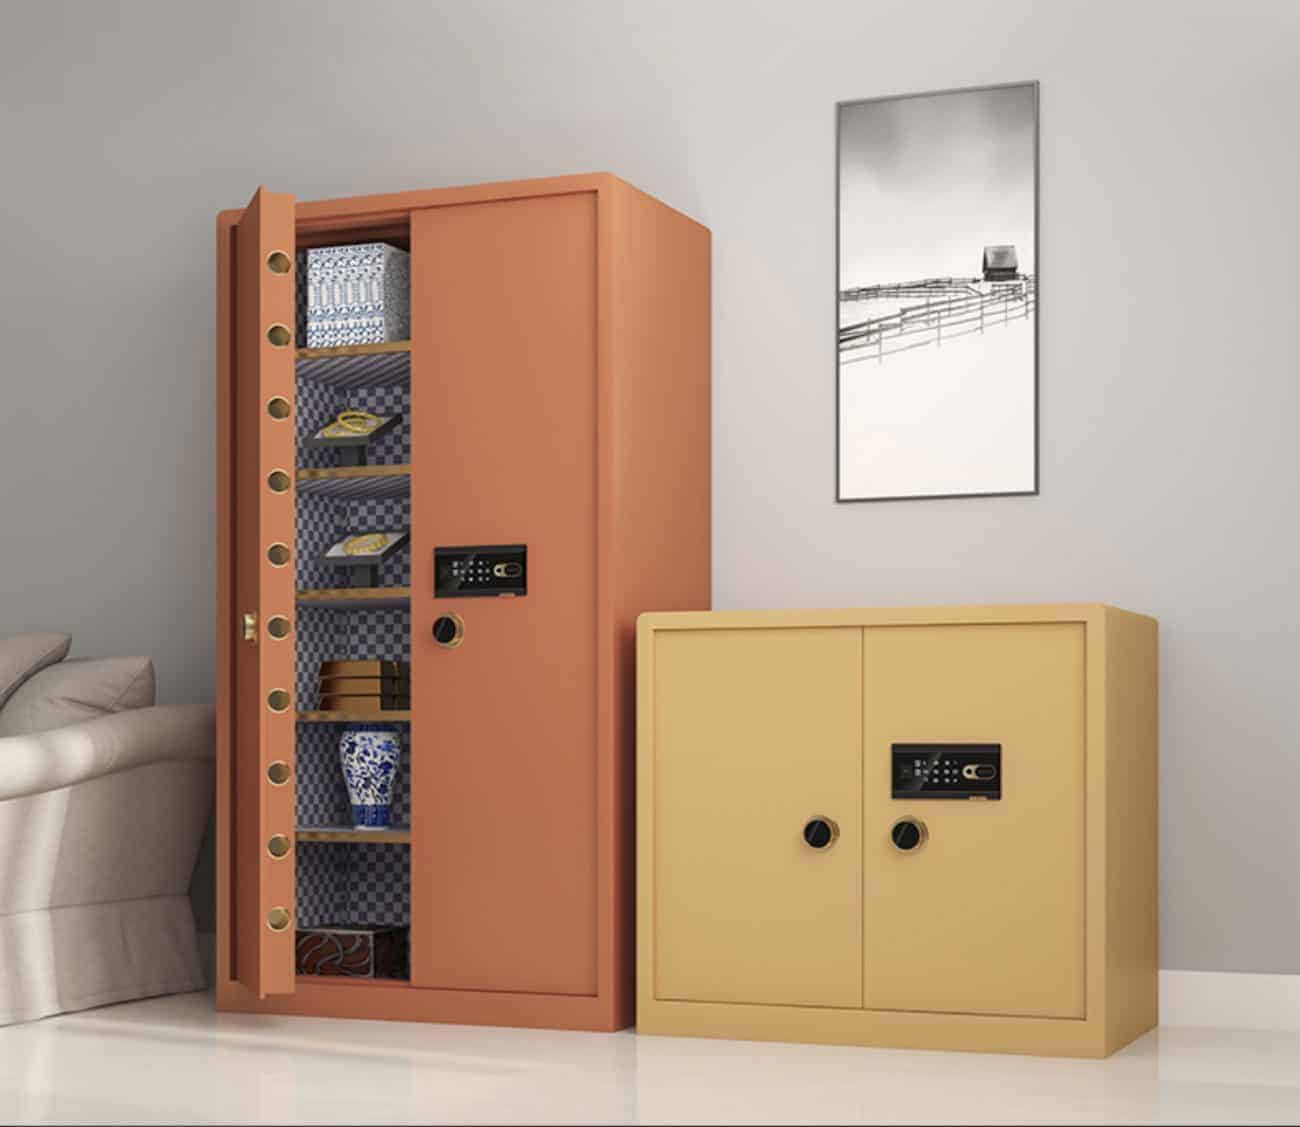 How to Choose the Best Depository Safe for Home